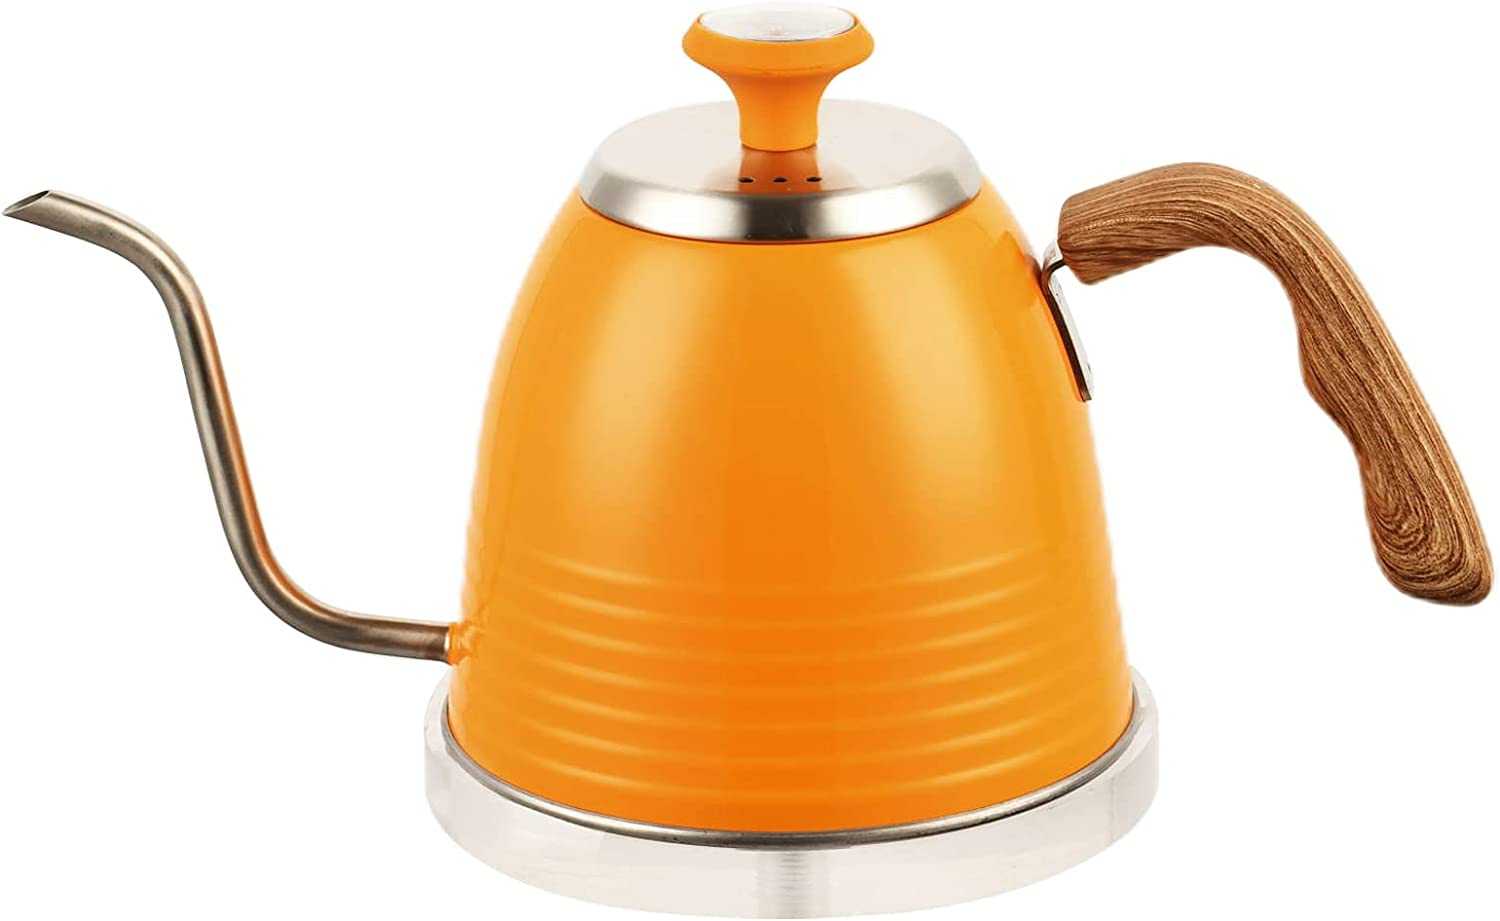 Gooseneck Kettle - Stainless Steel Tea Pour Max 57% OFF Max 69% OFF Over Coffee